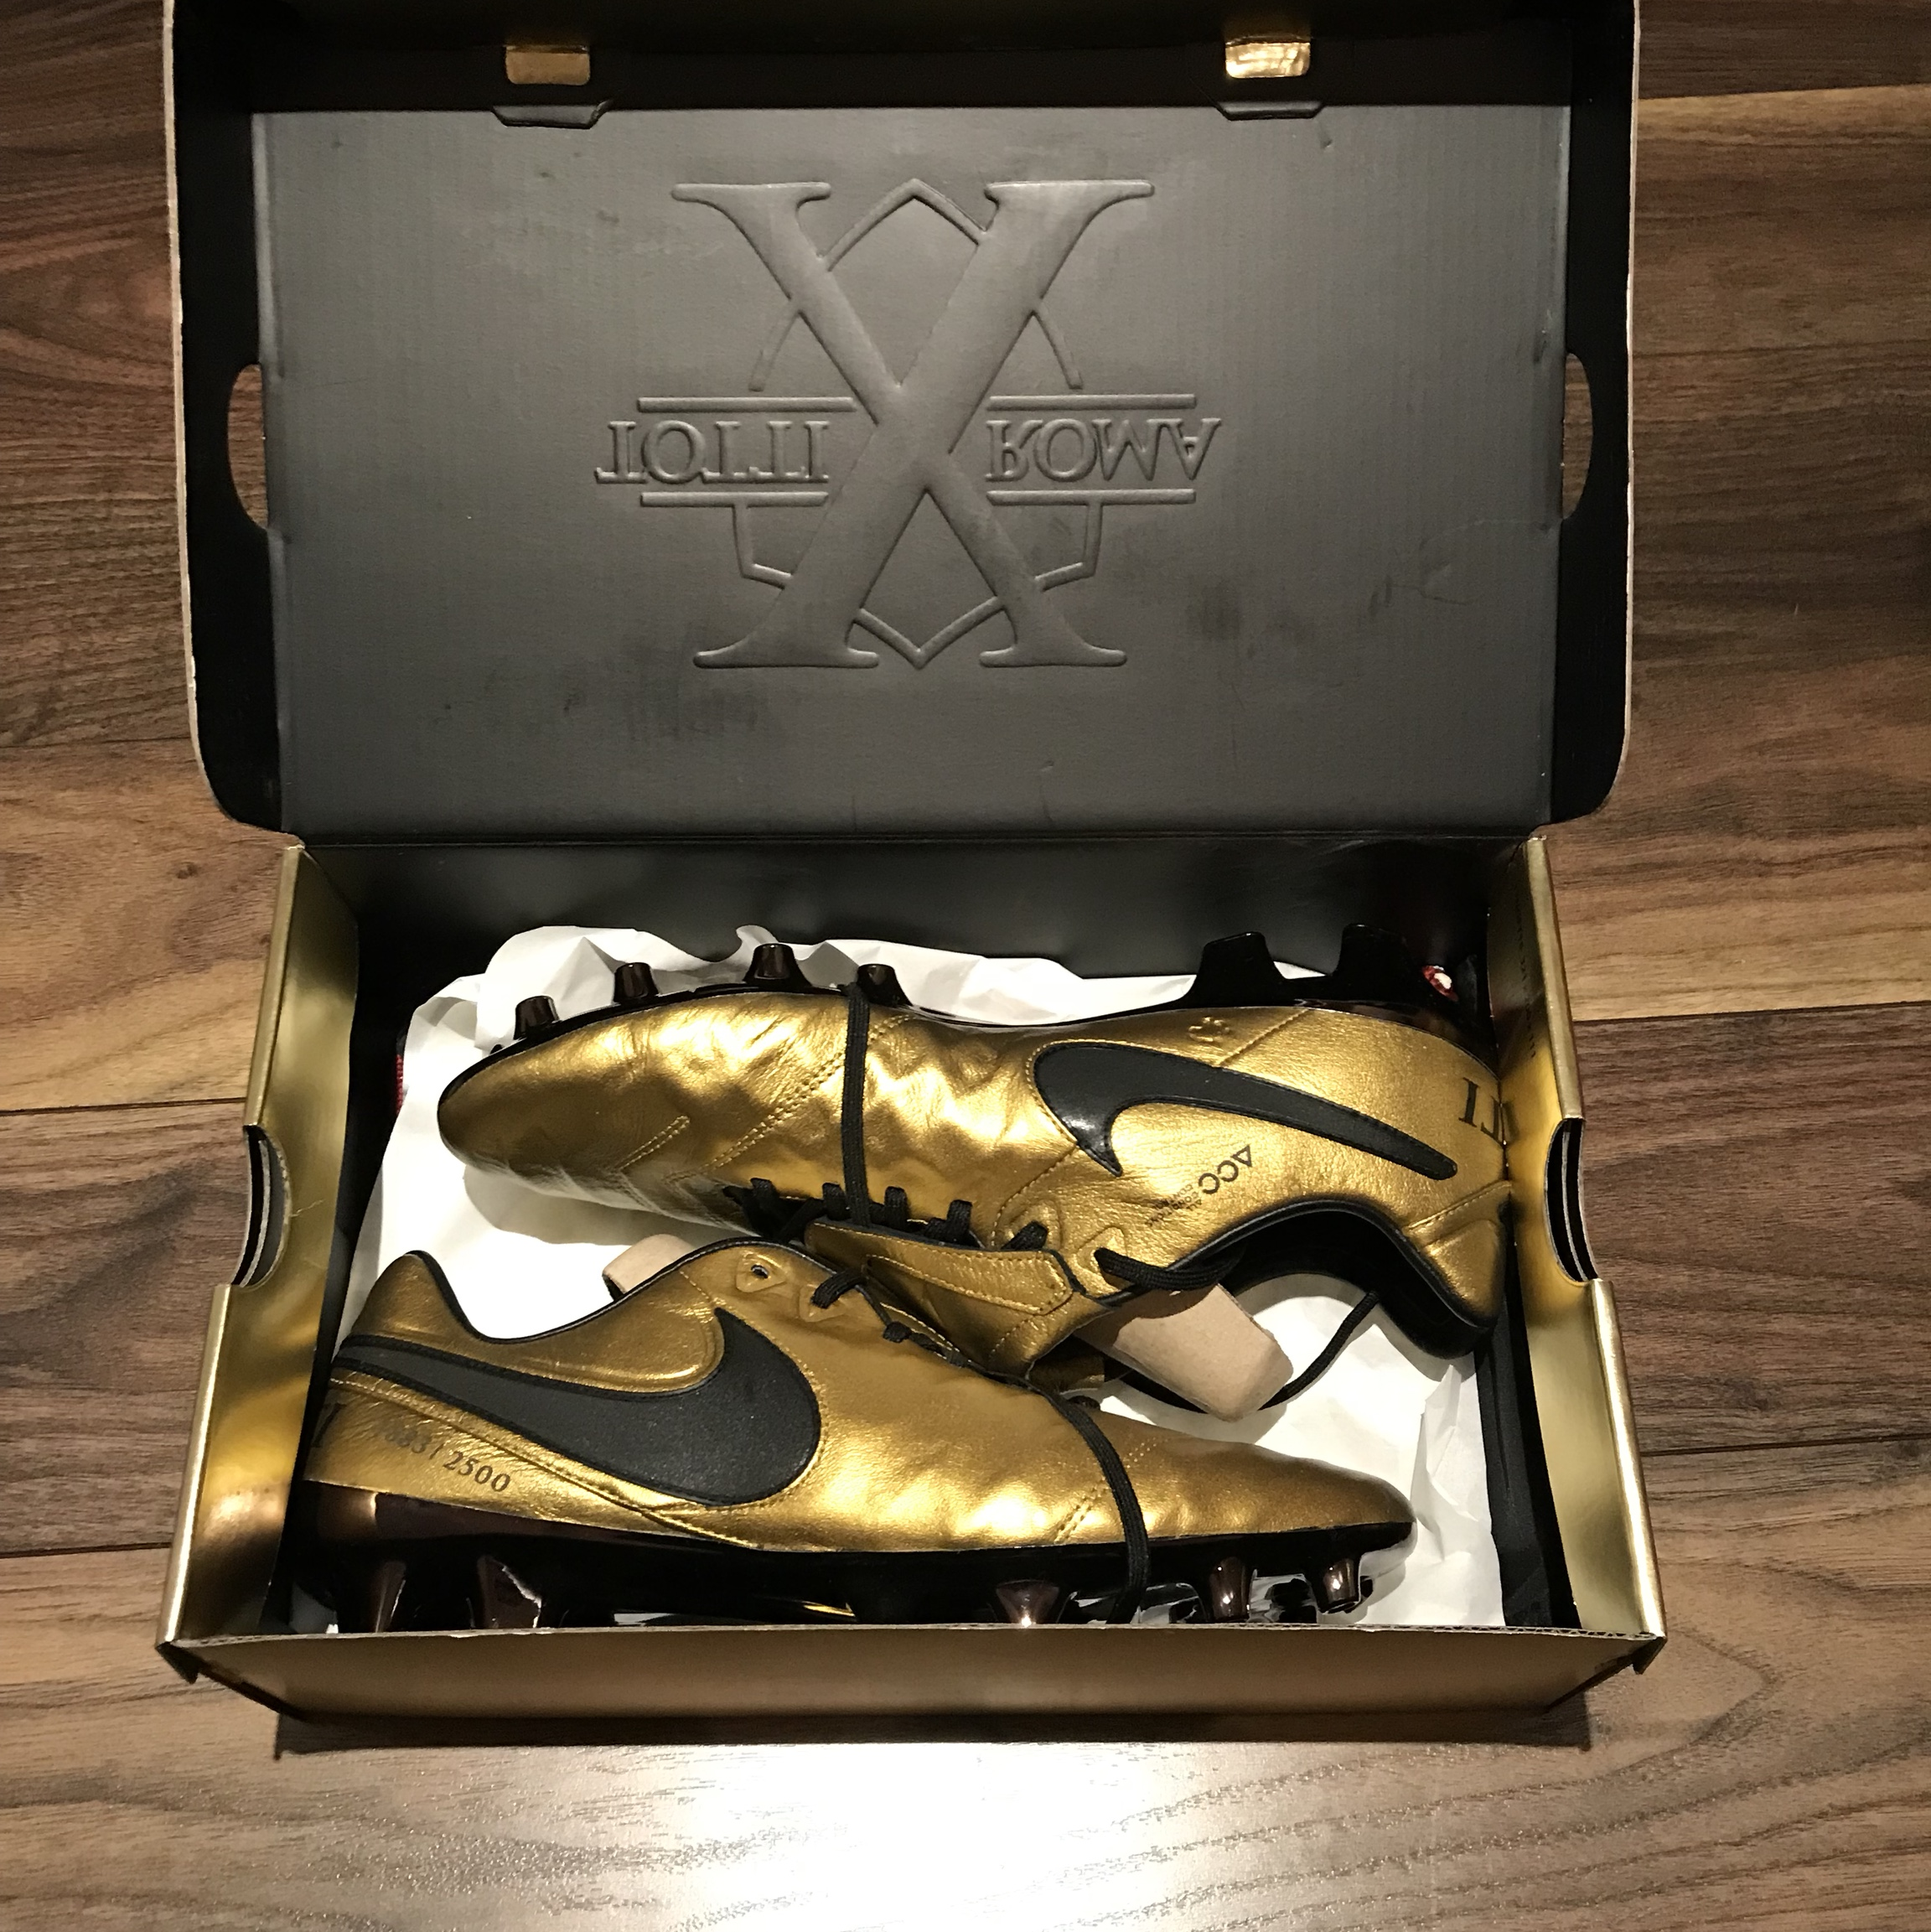 los angeles fdfb4 d03a2 Nike tiempo totti special edition brand new in box... - Depop